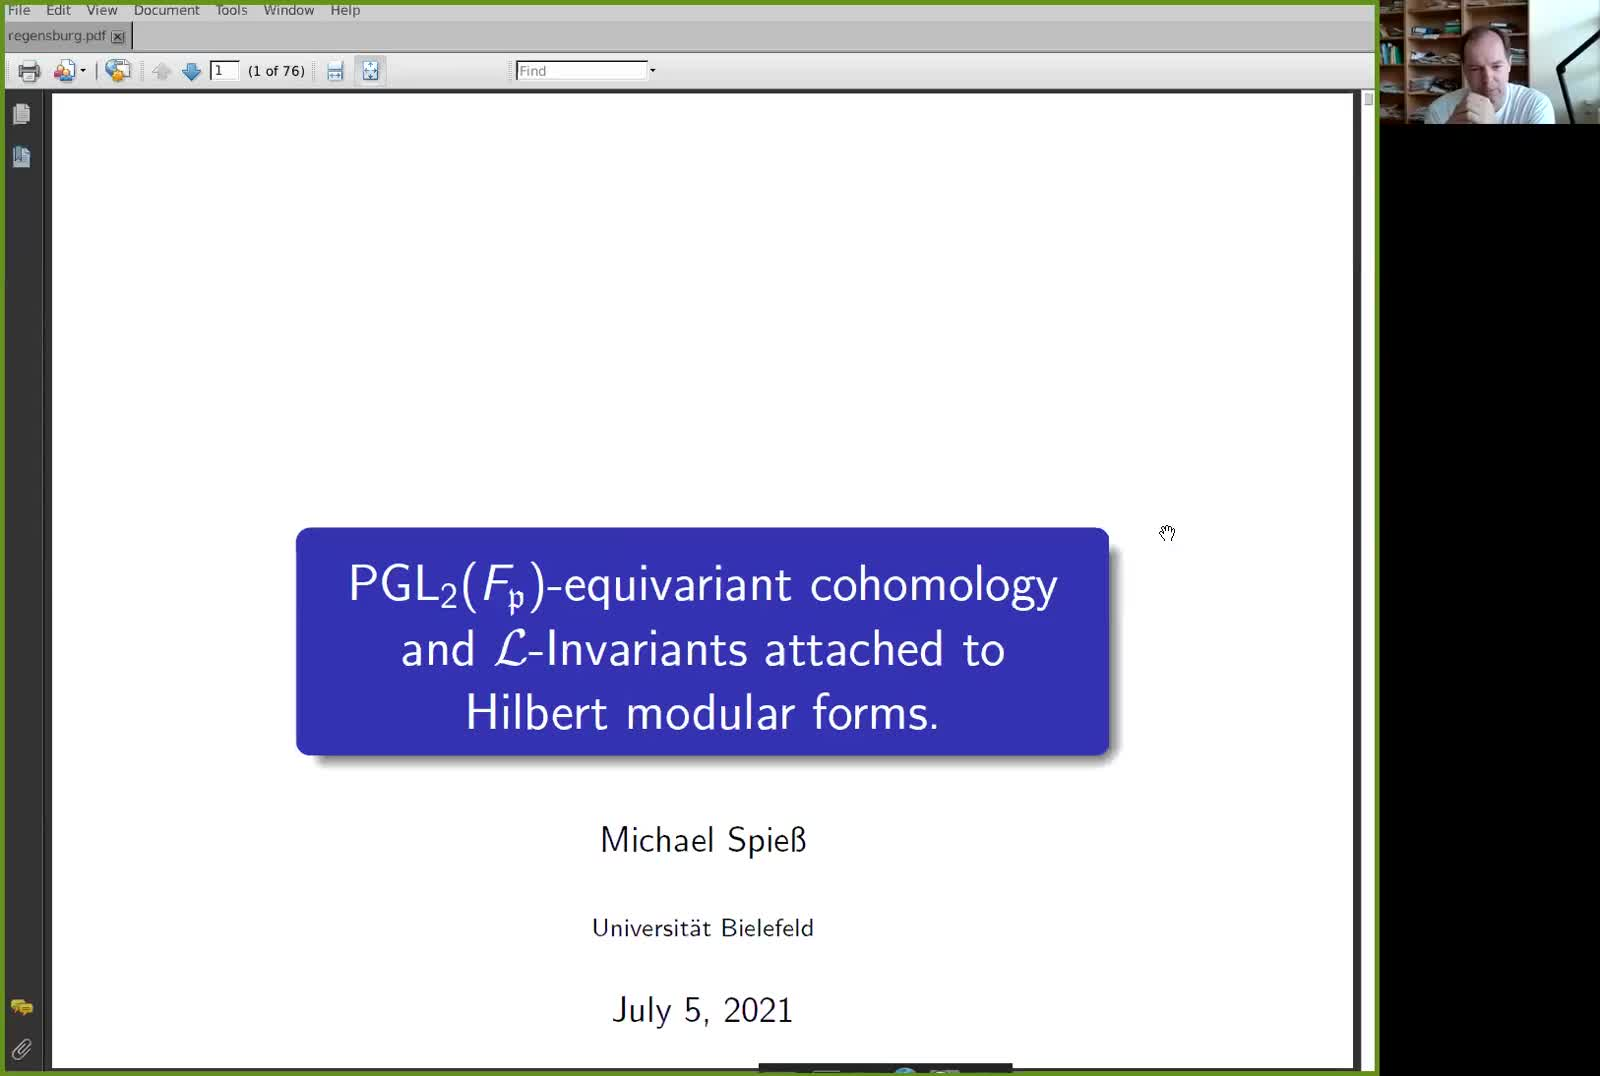 PGL_2(F_p)-equivariant Cohomology and L-invariants attached to Hilbert modular forms